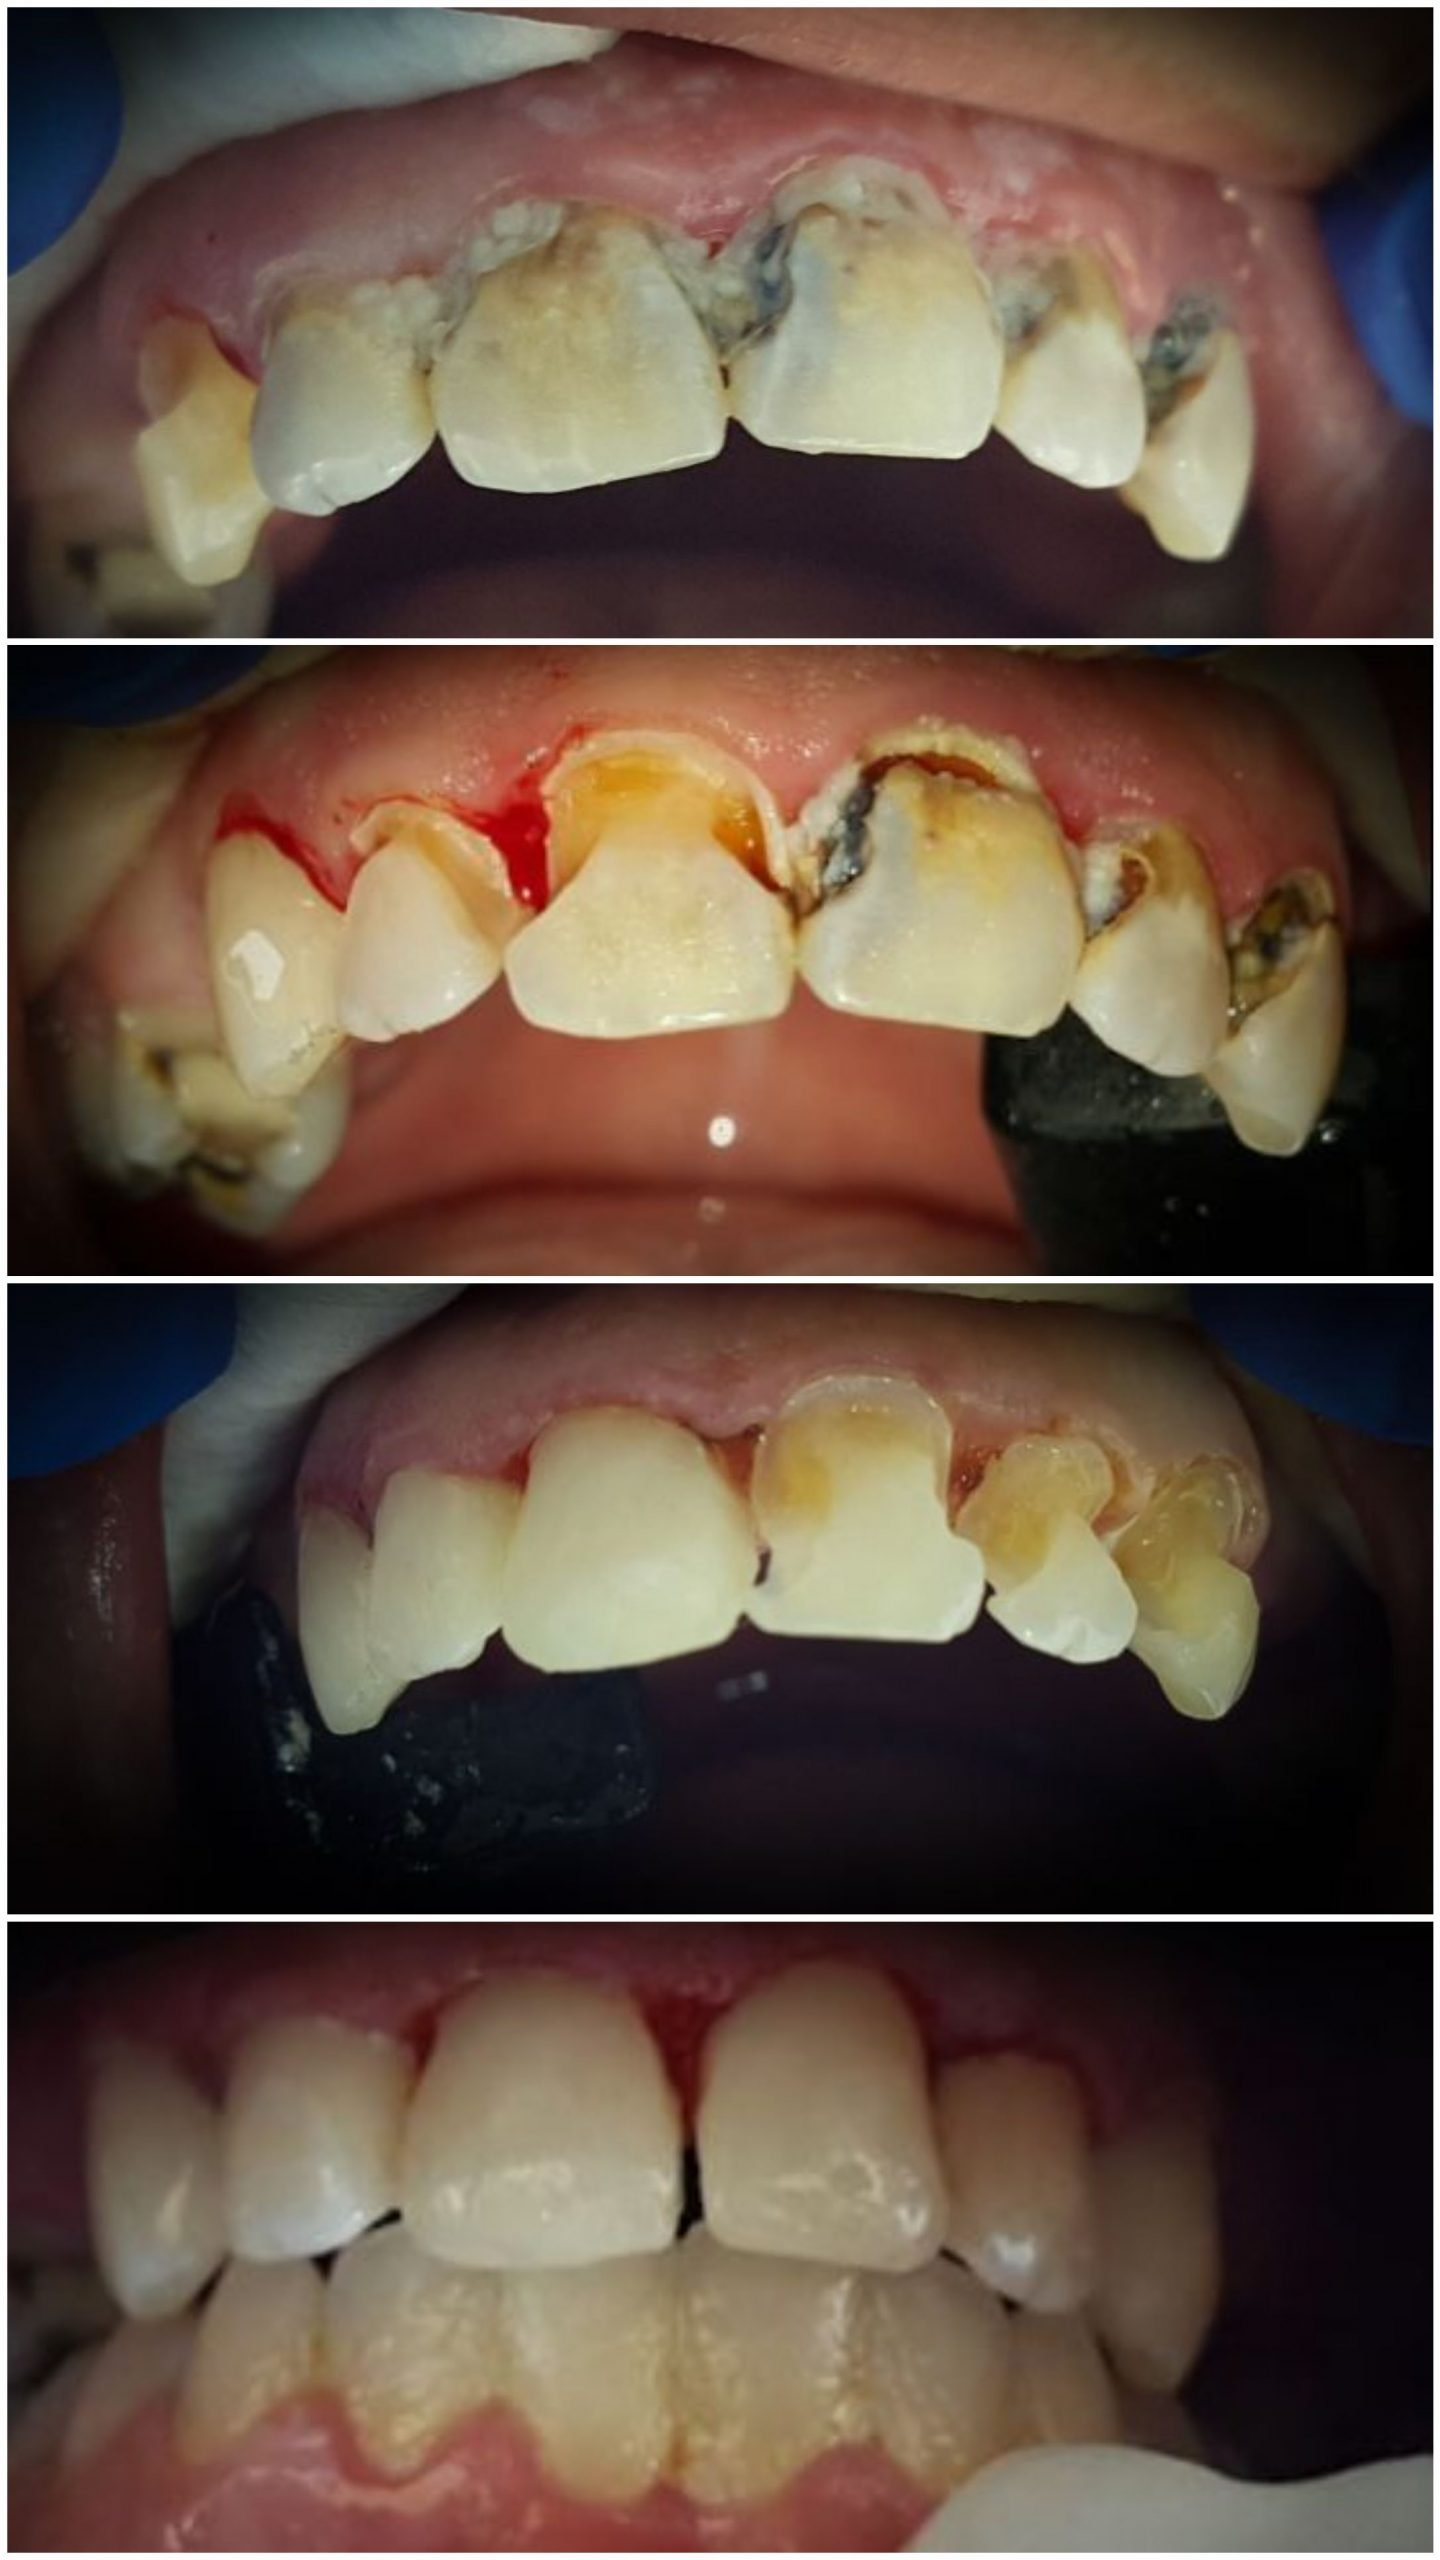 Before, during treatment, and after images of a patient that had decay on all her front teeth that were restored with tooth colored fillings